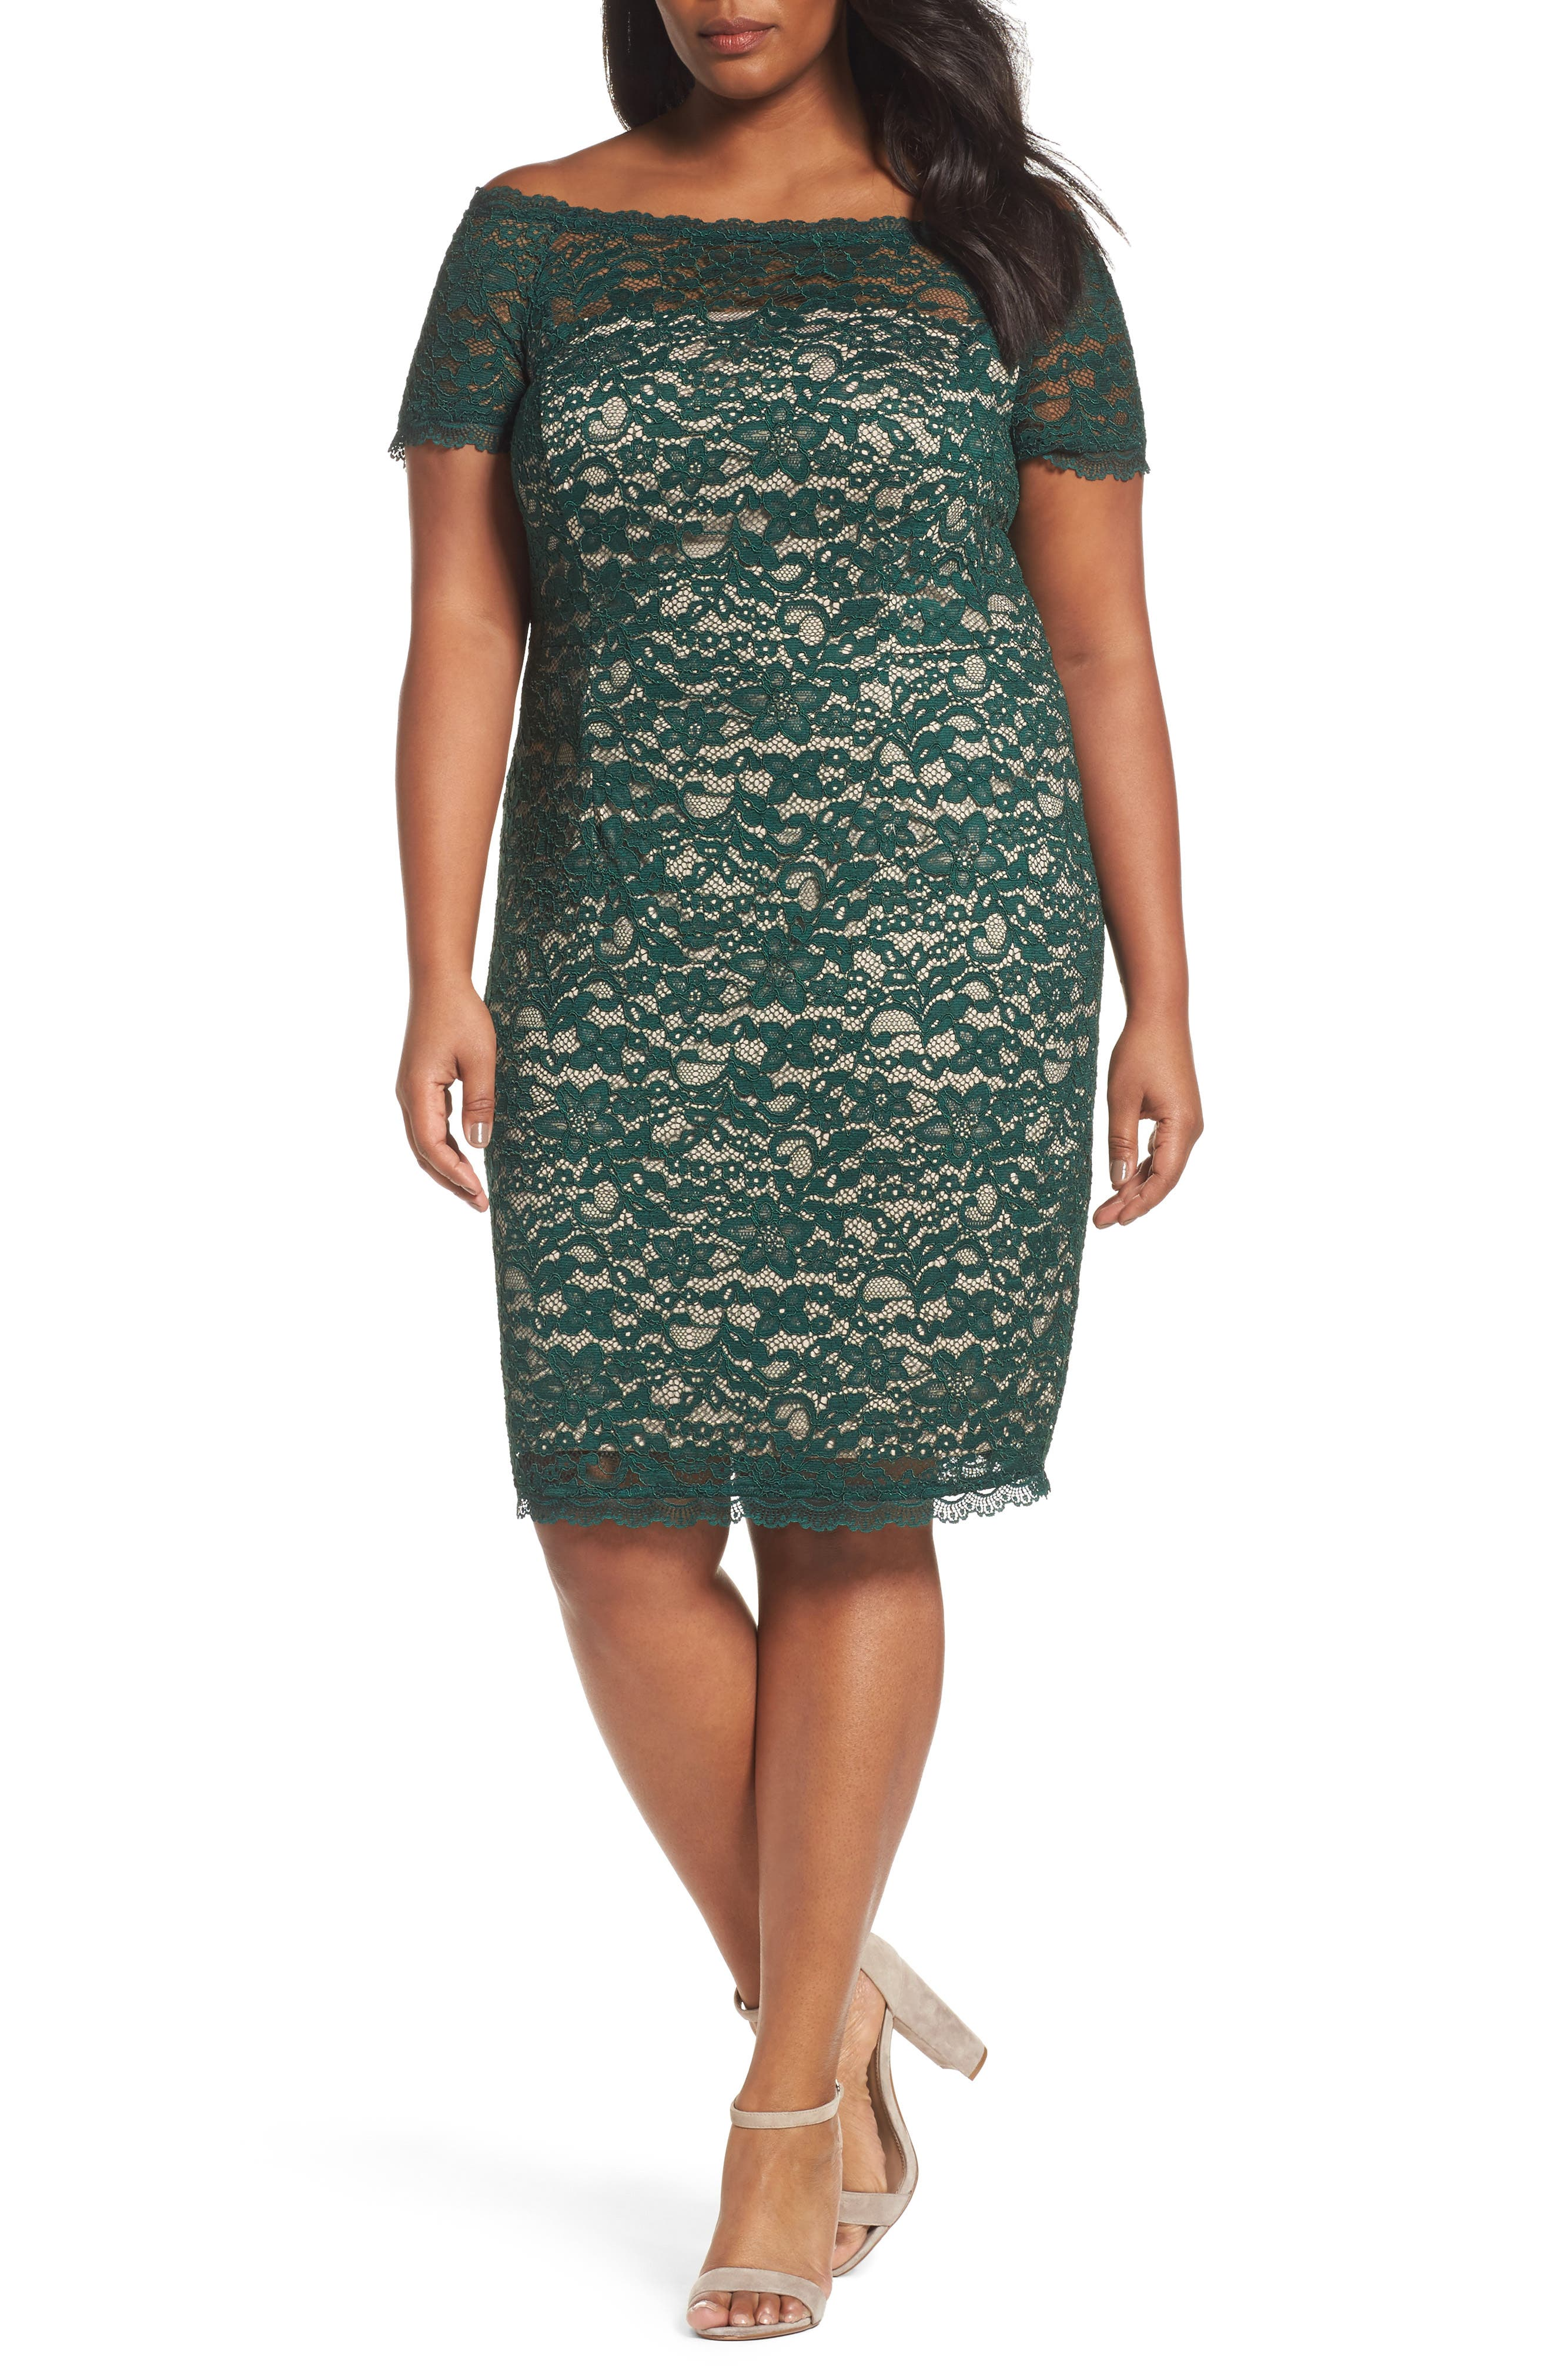 Alternate Image 1 Selected - Adrianna Papell Off the Shoulder Lace Sheath Dress (Plus Size)